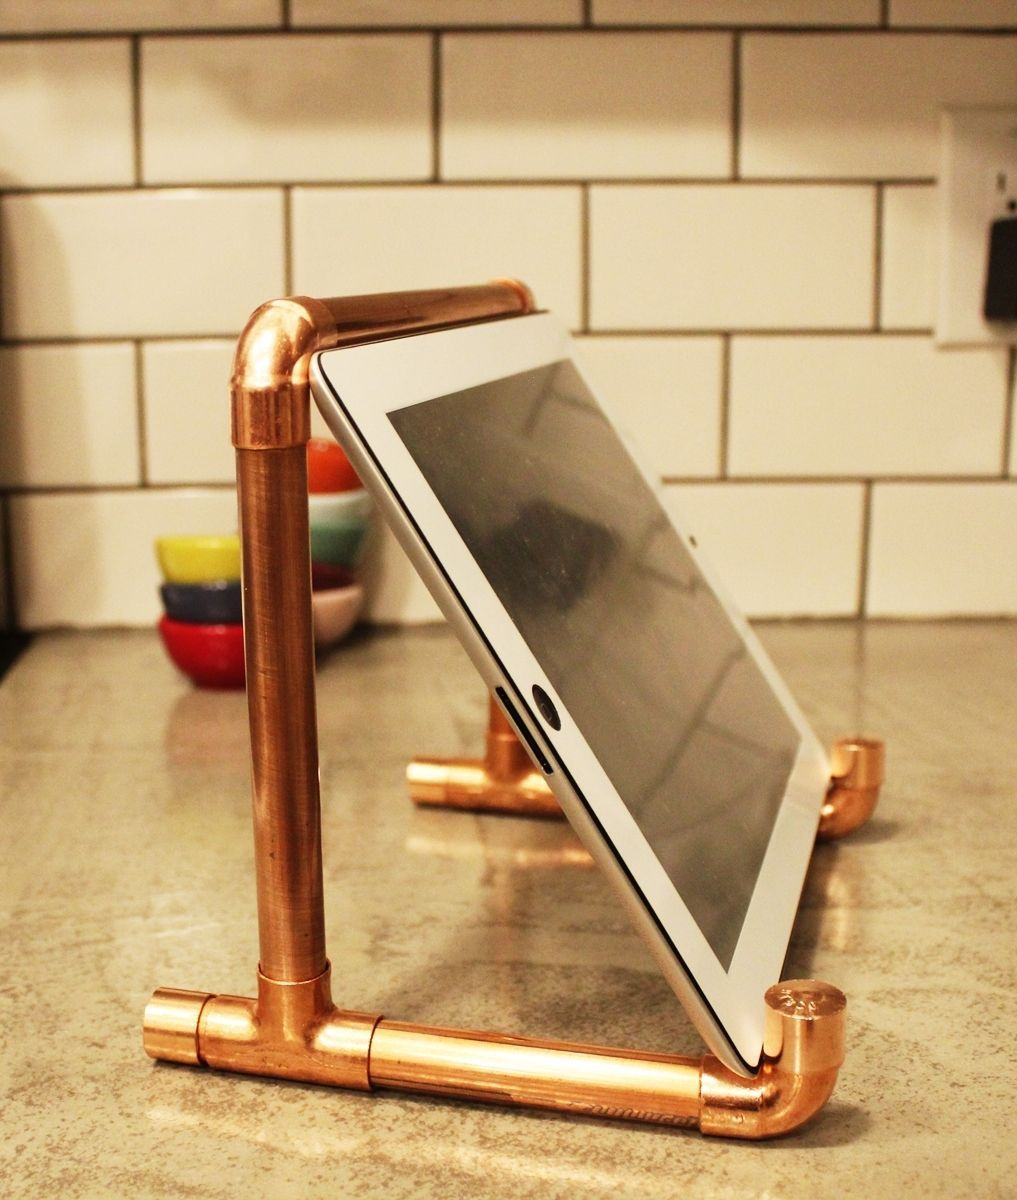 DIY Copper iPad Stand for Countertop – Home Decorating Trends – Homedit - Herons.dragonball.site